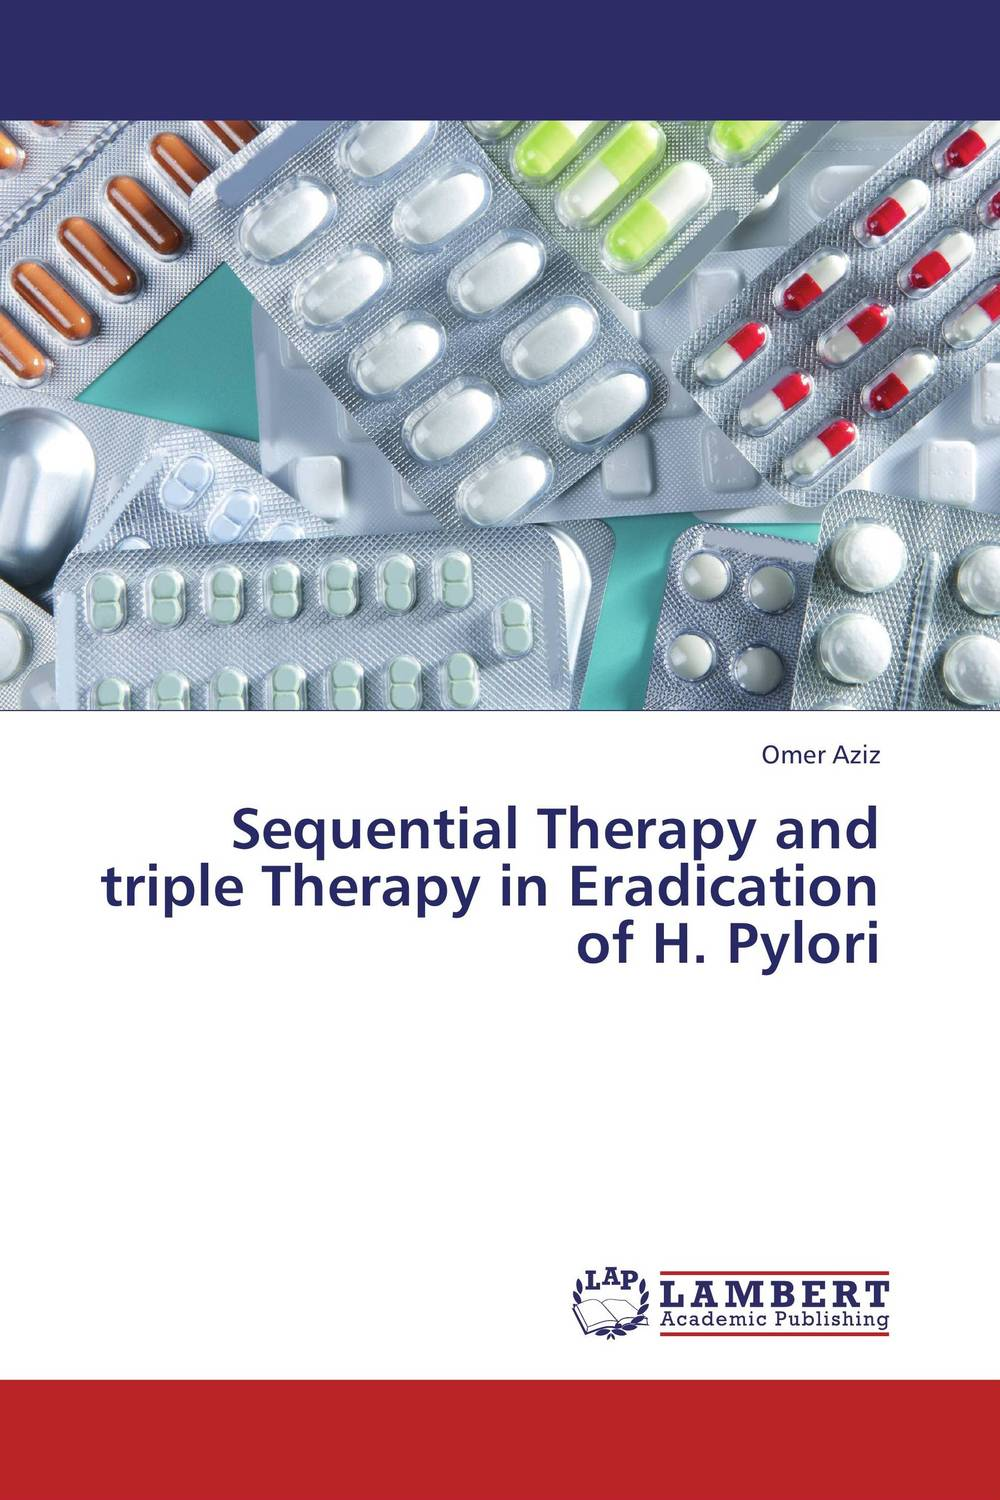 Sequential Therapy and triple Therapy in Eradication of H. Pylori